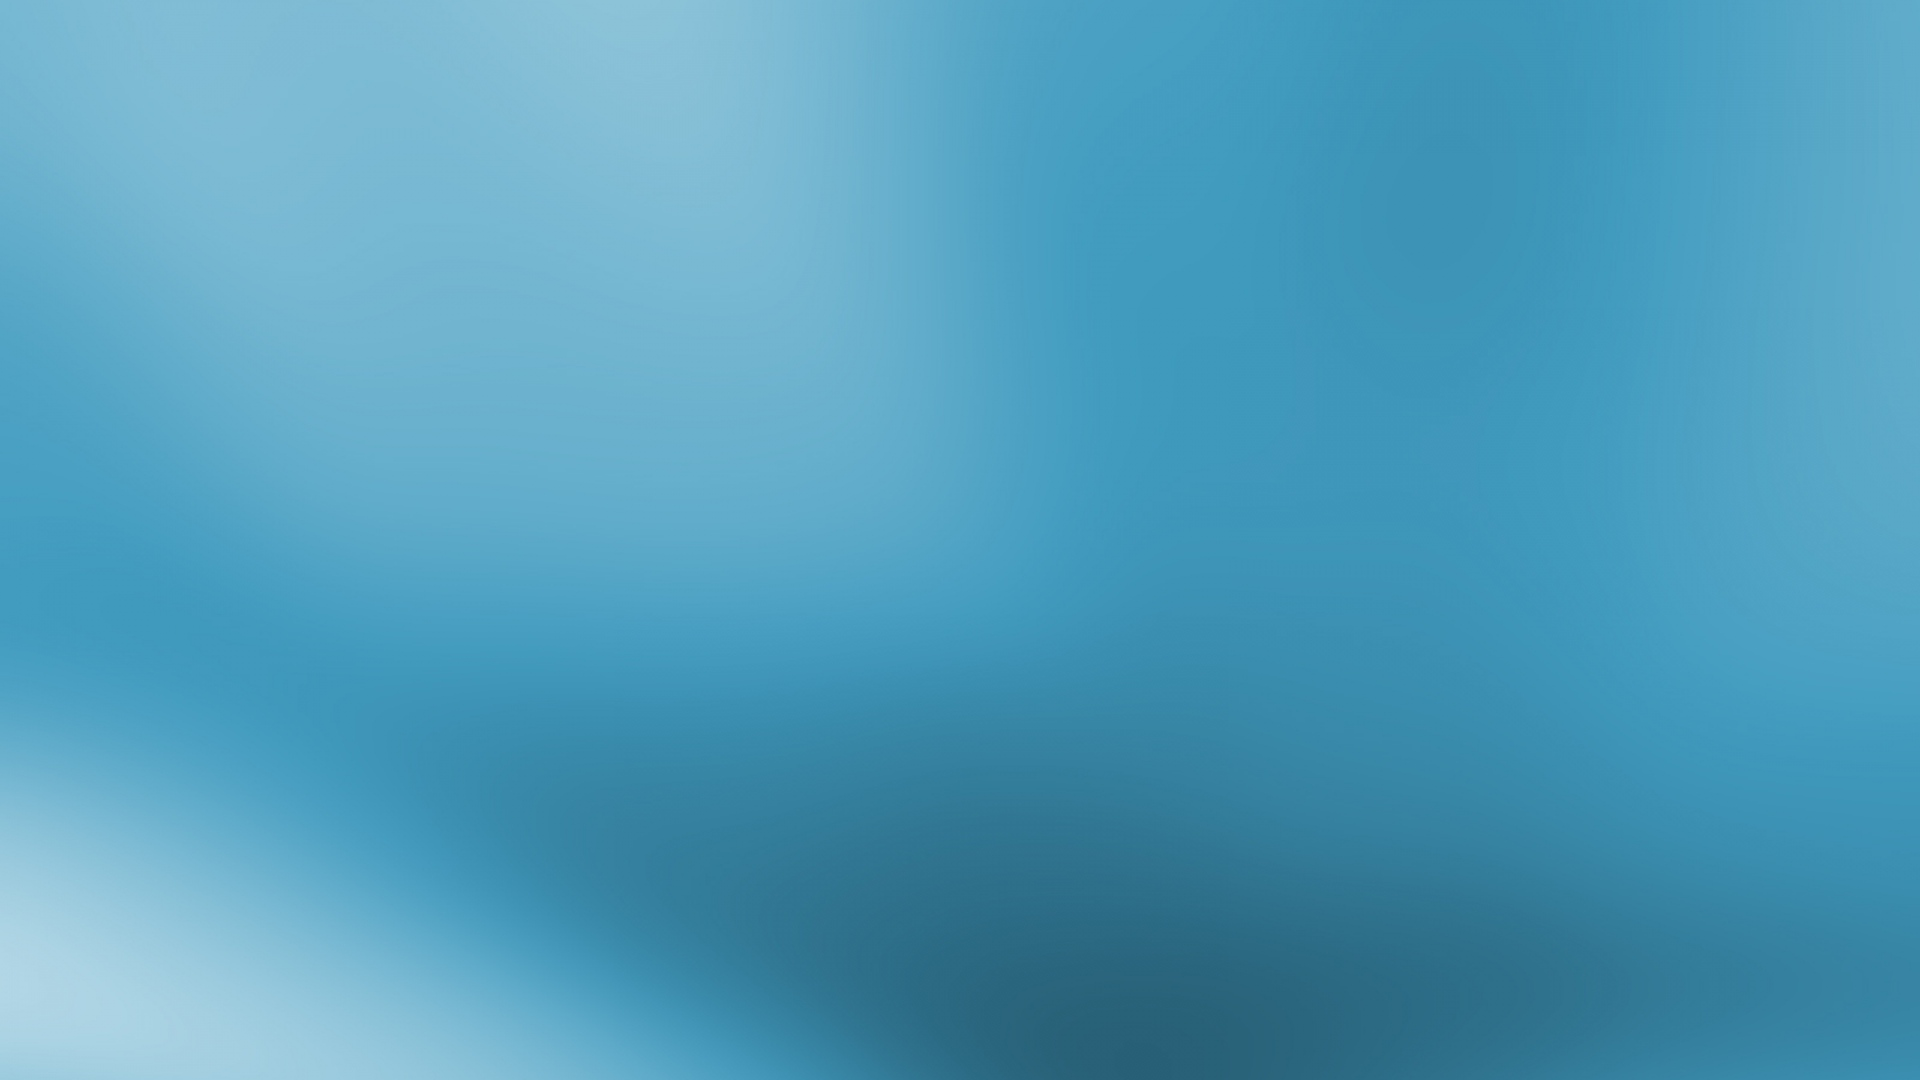 download wallpaper 1920x1080 blue, bright, matte, solid, surface